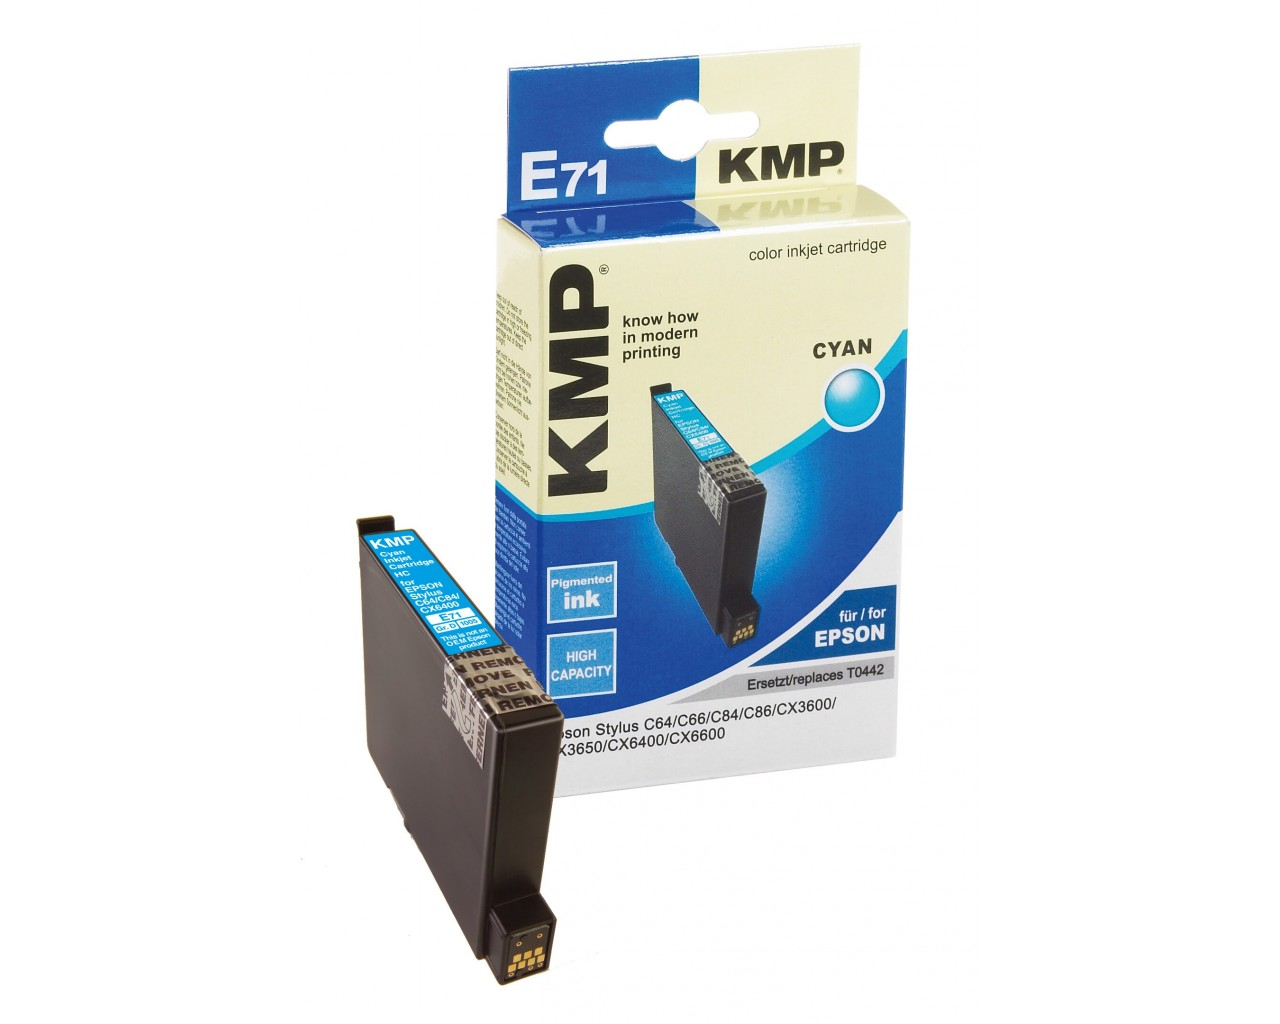 KMP Epson E71 ink cartridge cyan 13ml